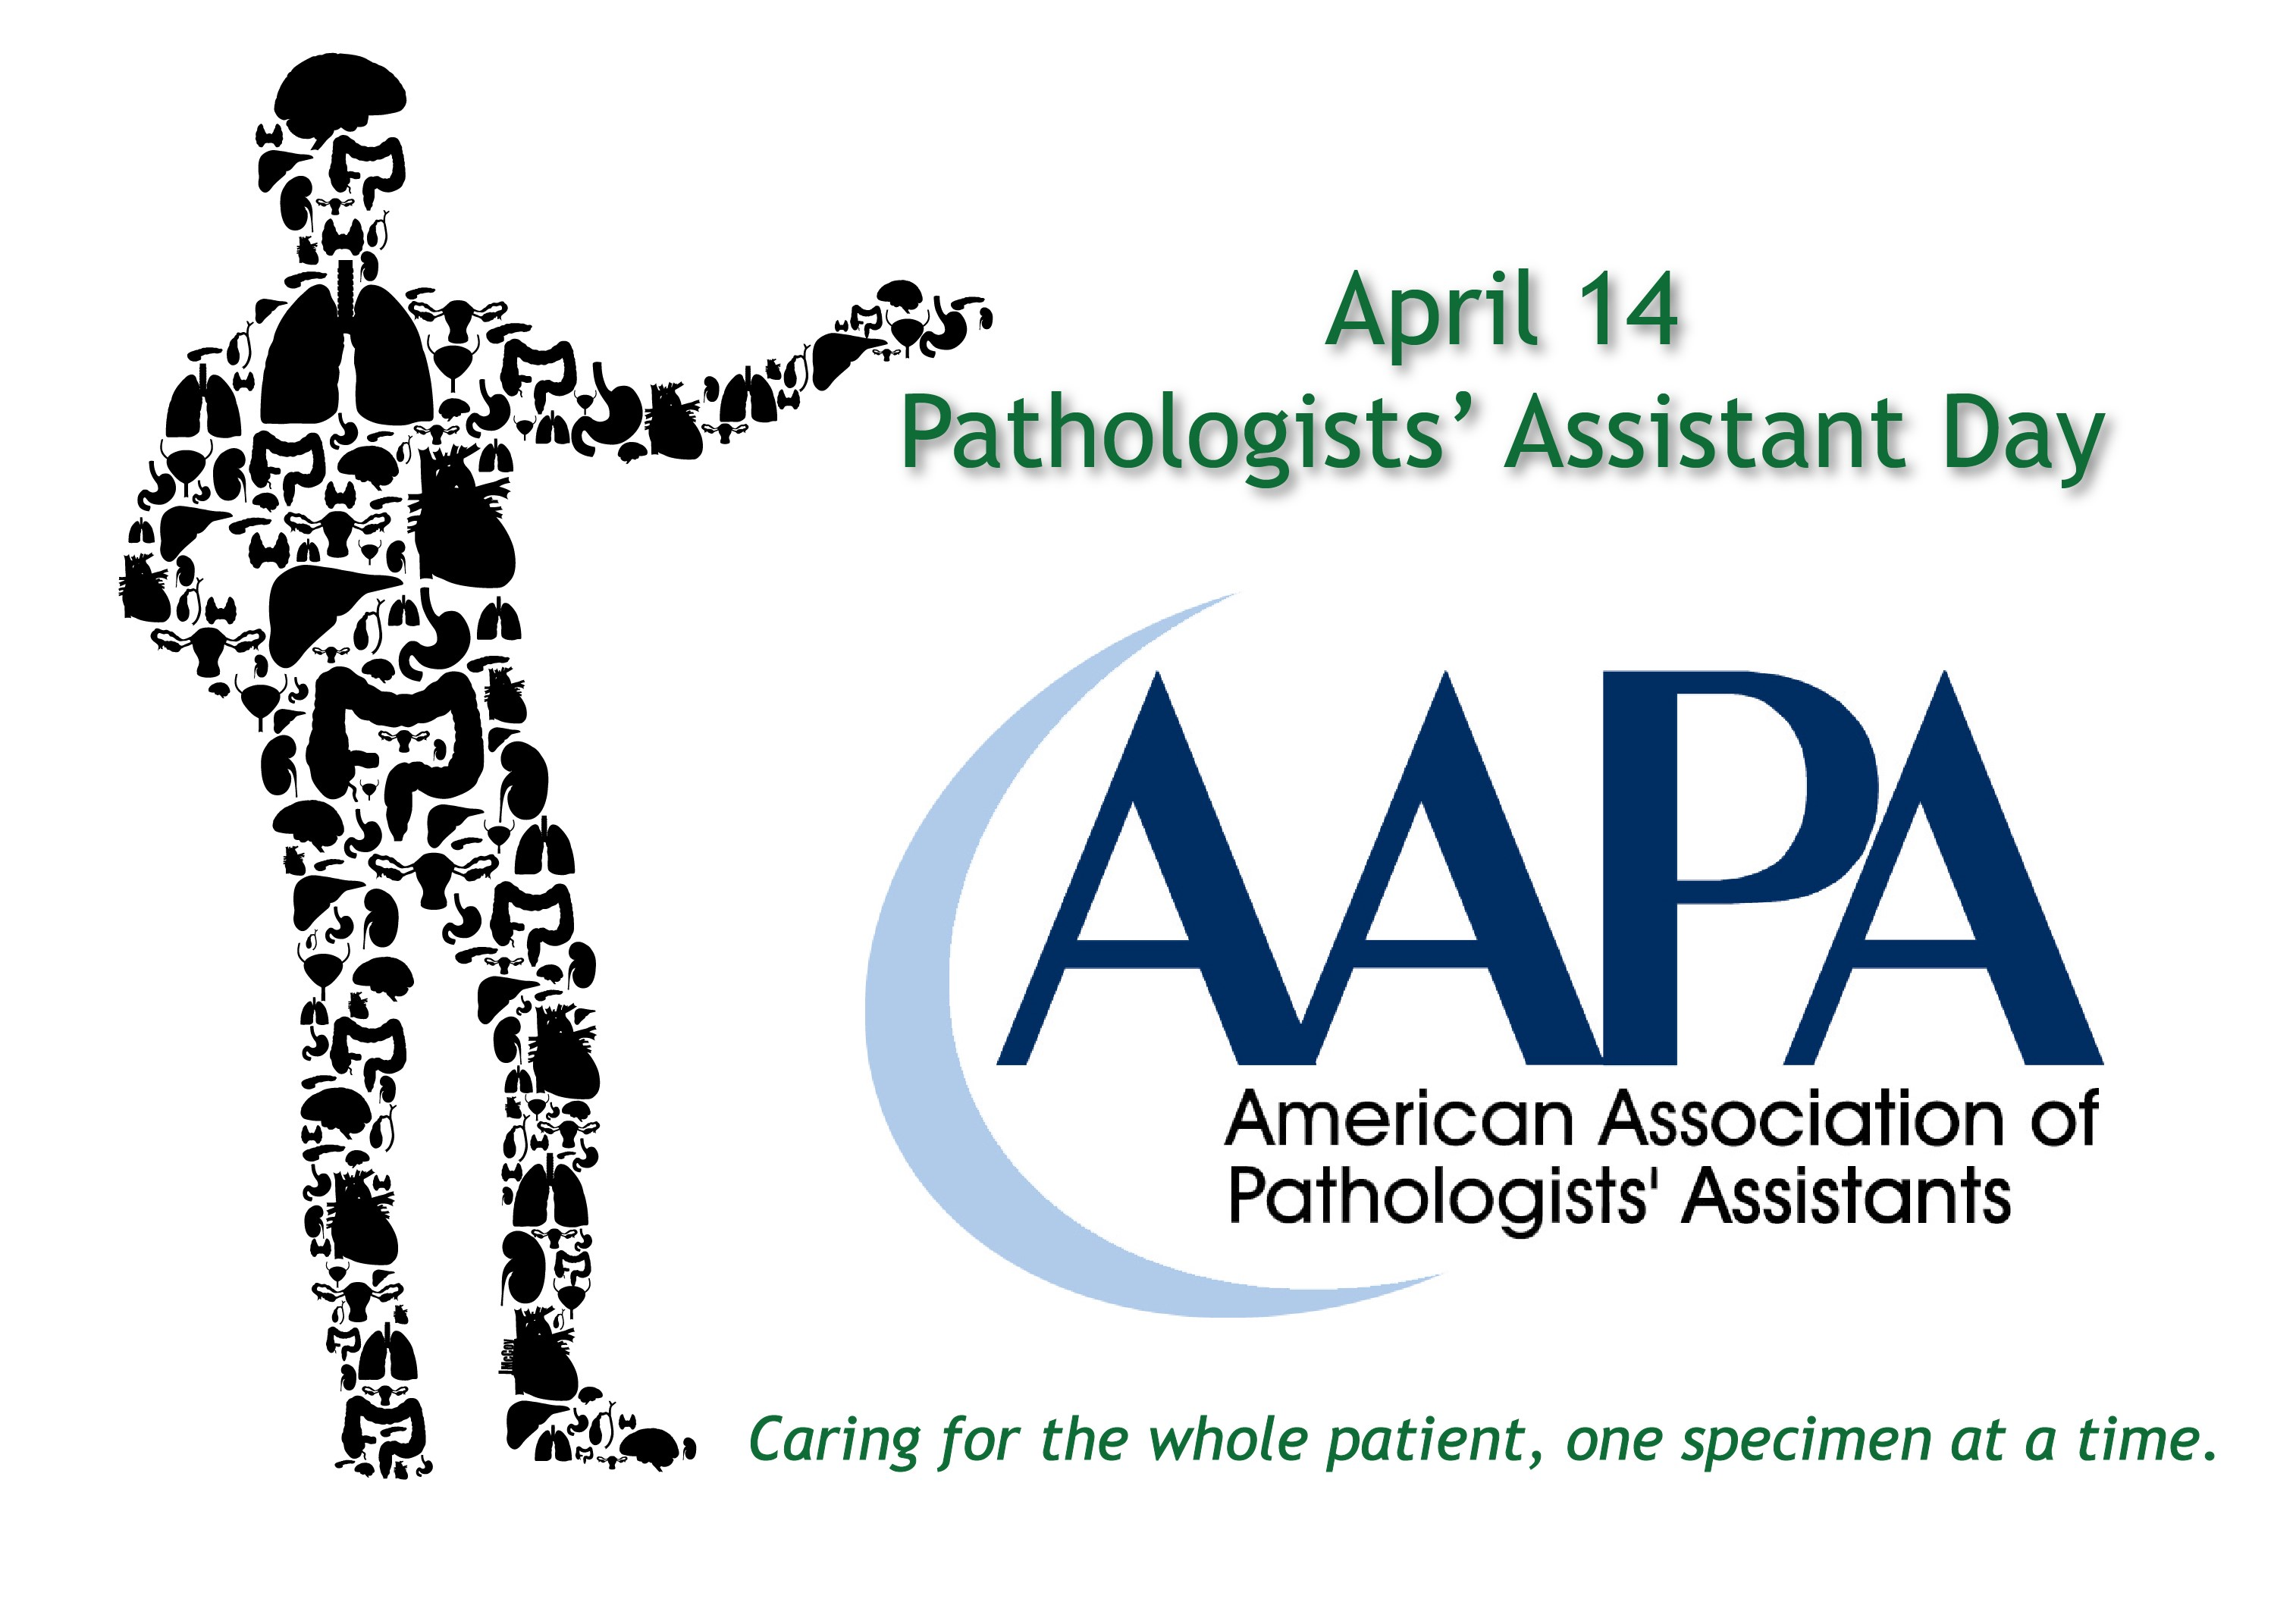 American Association of Pathologists' Assistants (AAPA)